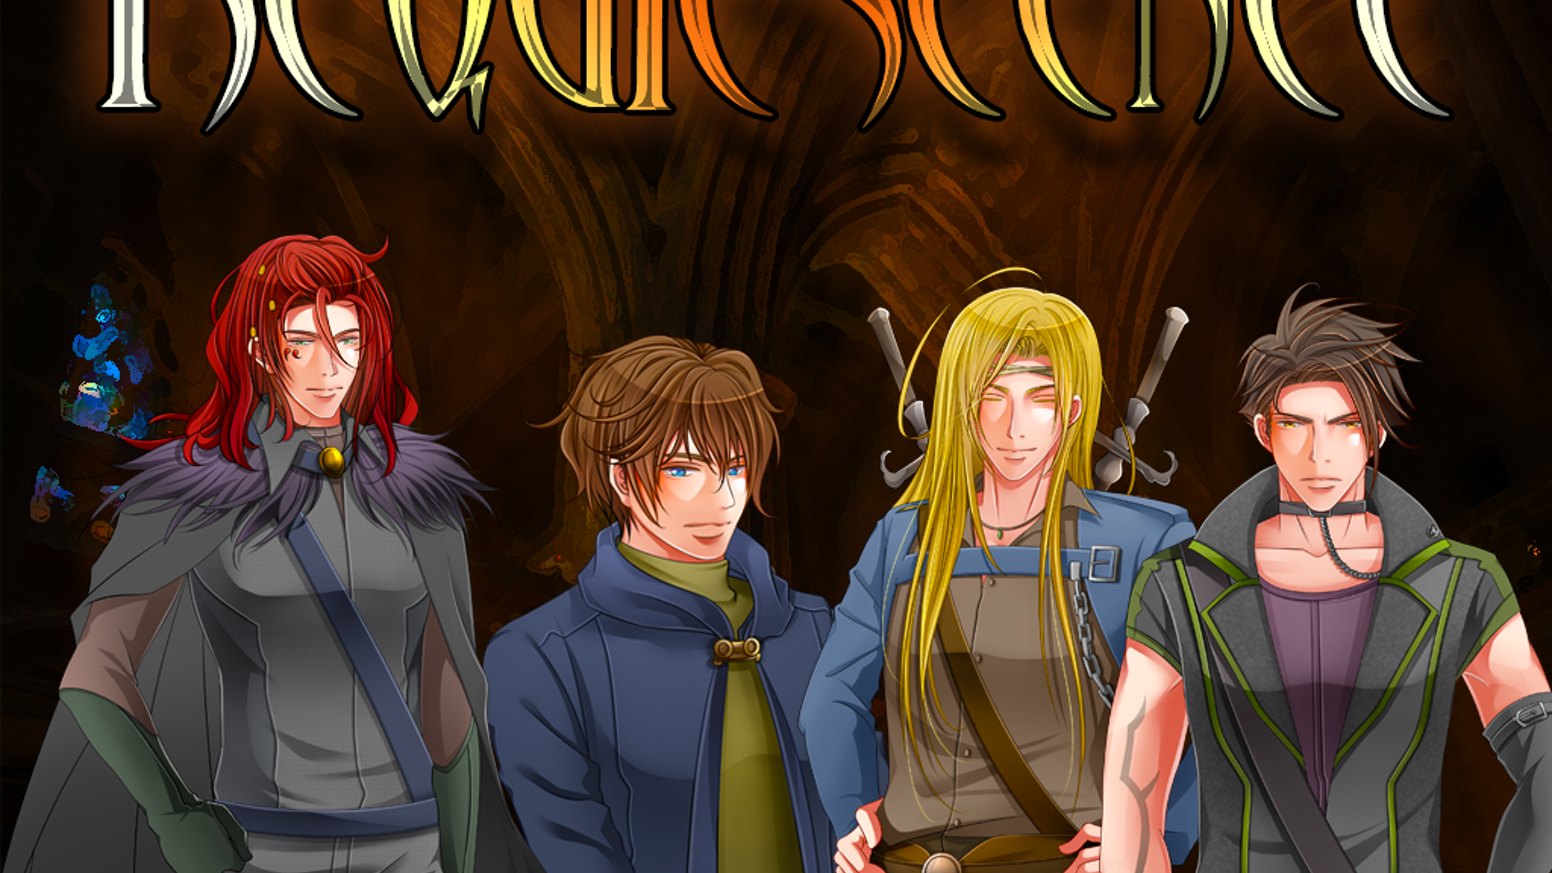 Dive into adventure, romance, and an epic story in this Nitro+CHiRAL inspired VN.